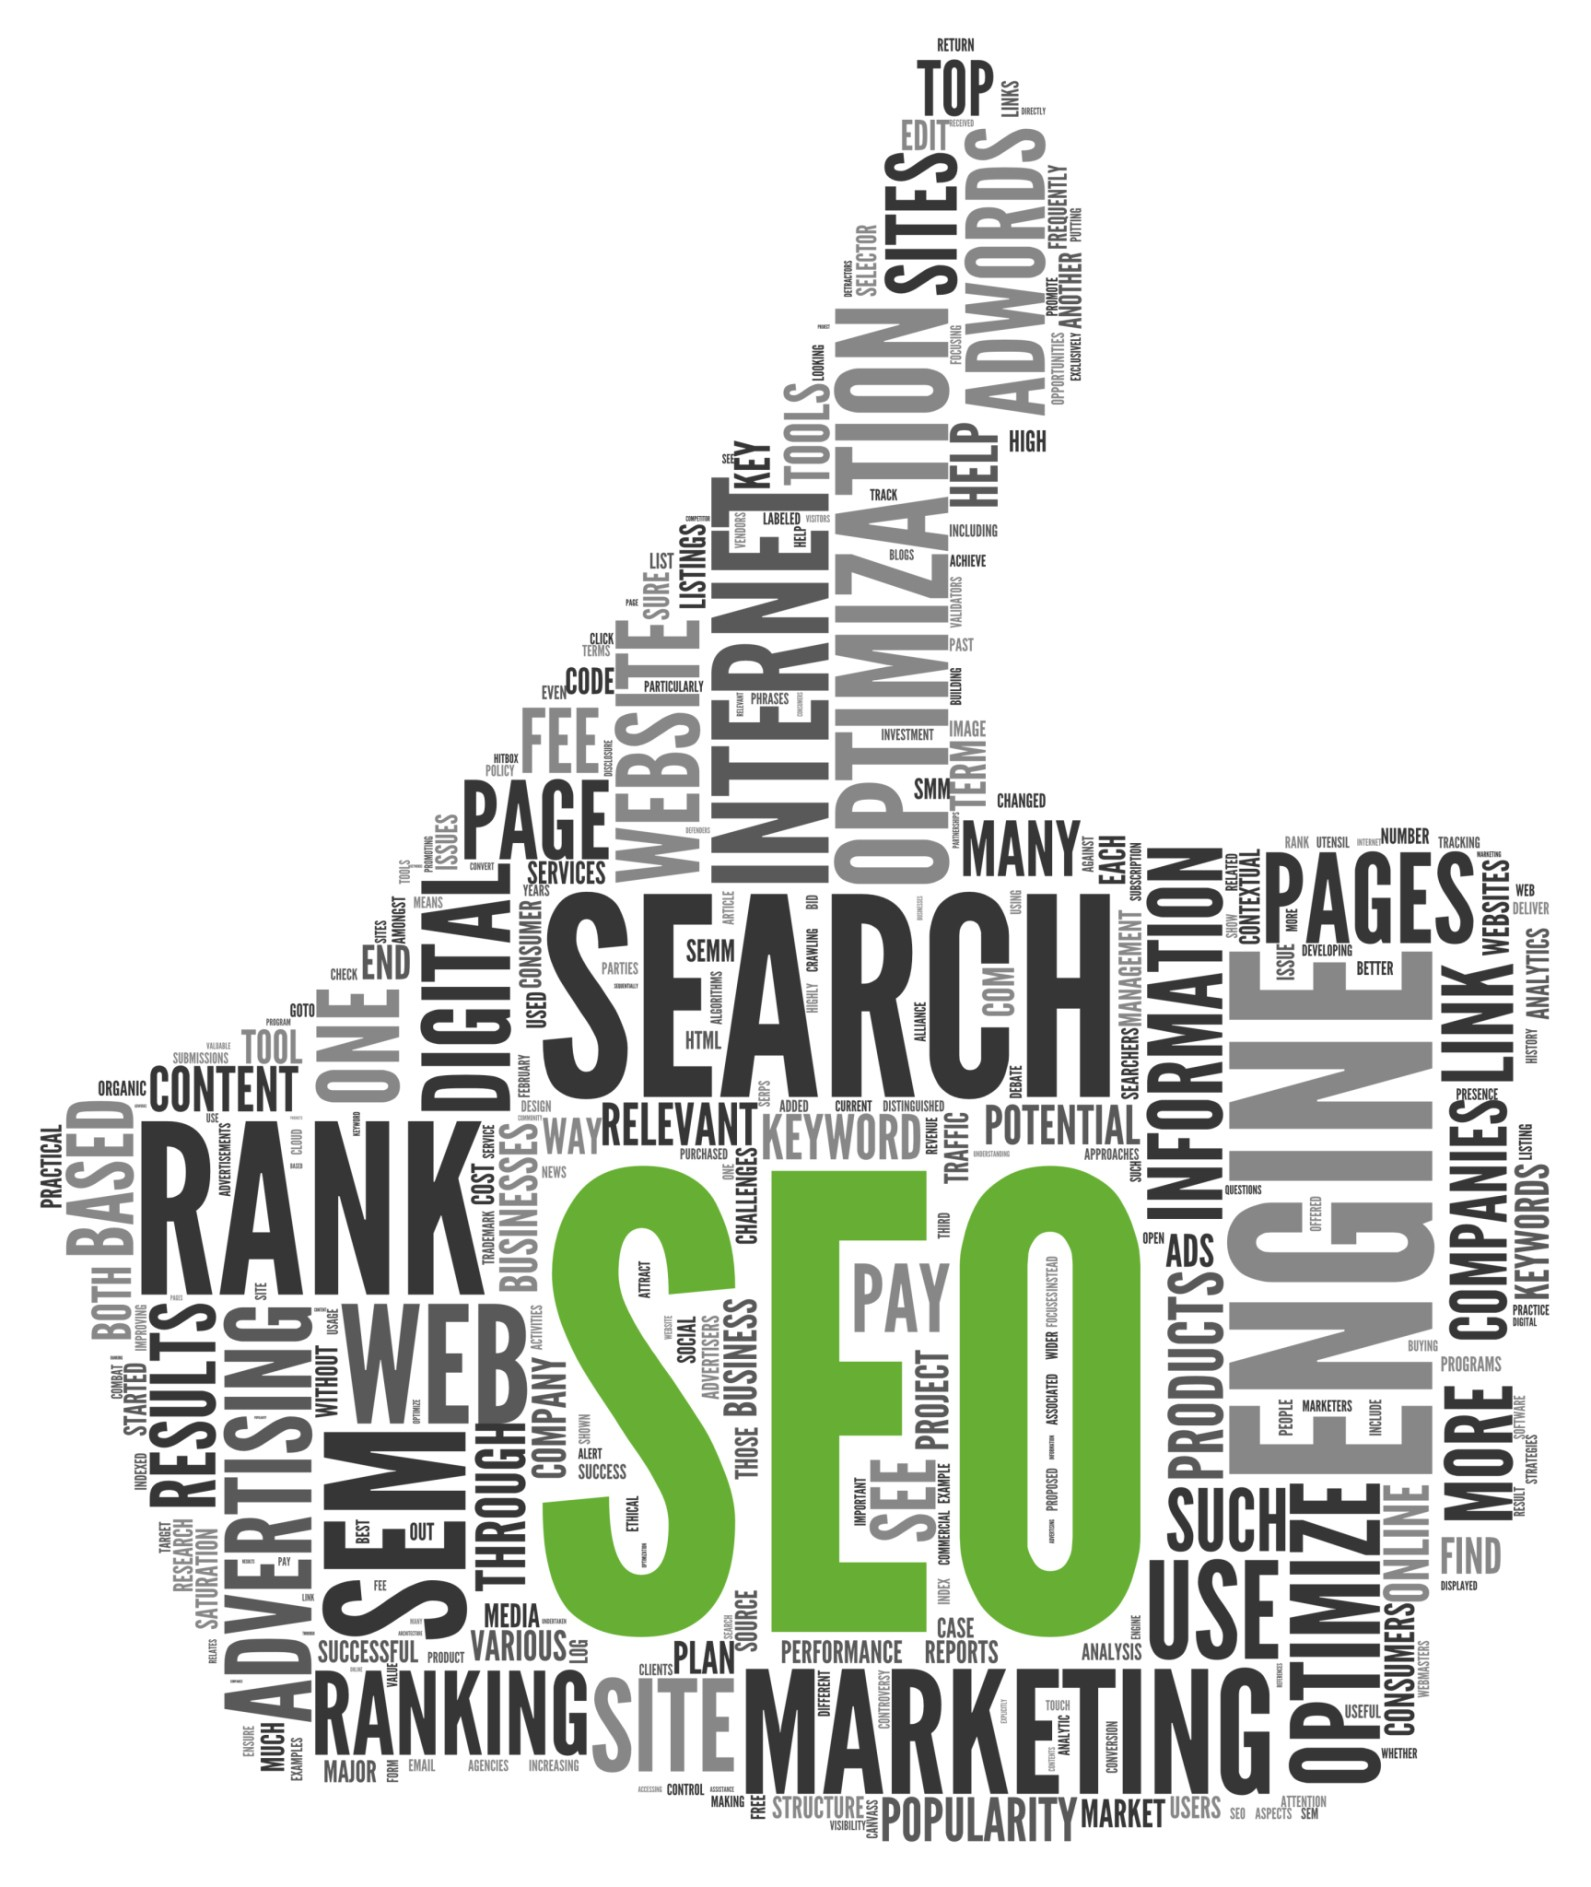 2015 SEO Trends To Be Aware Of